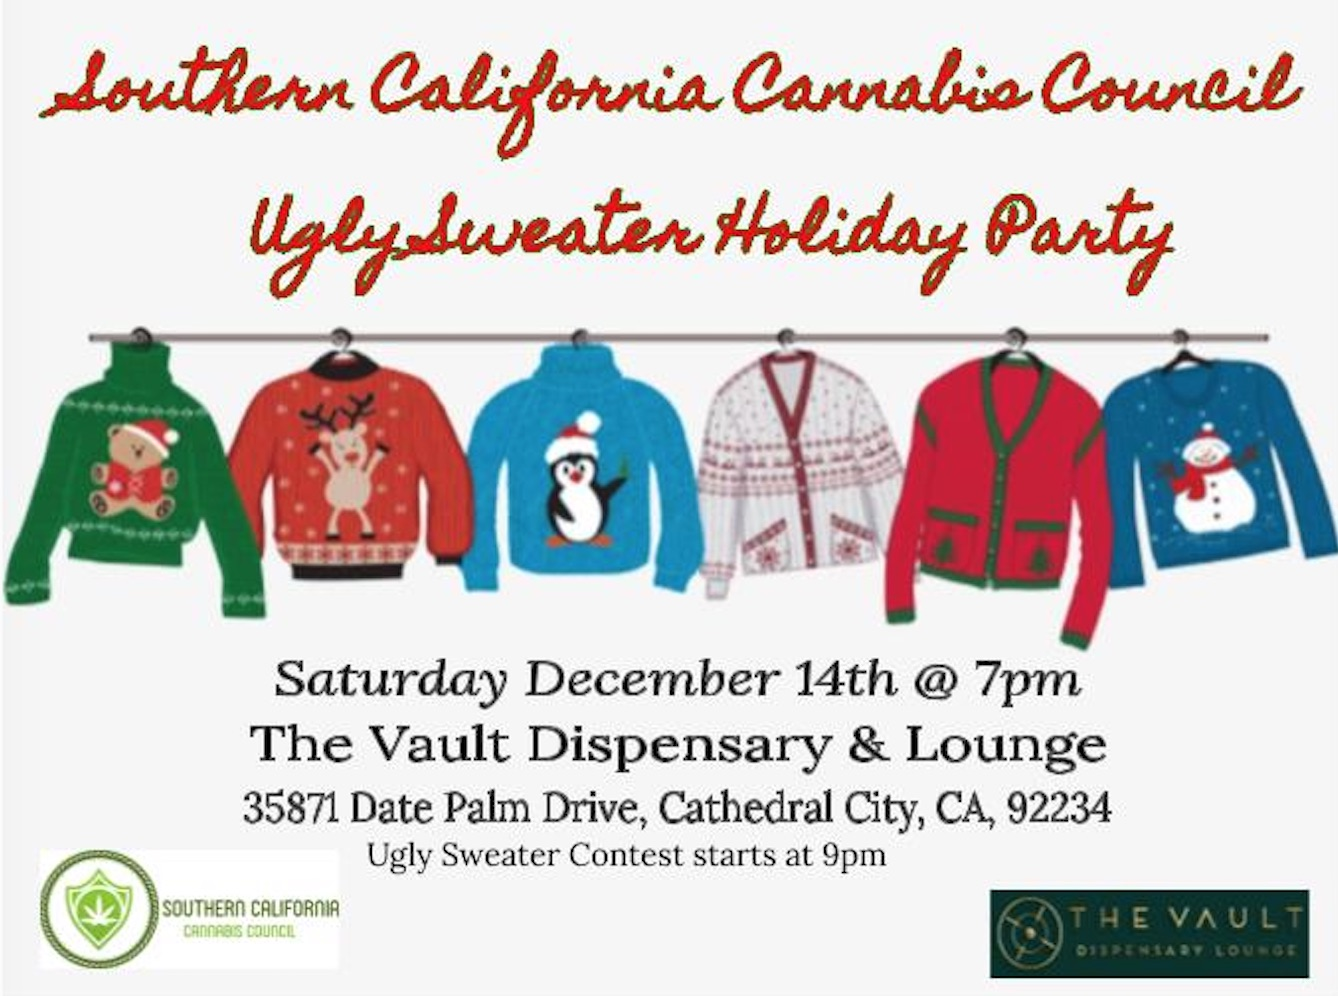 Southern California Cannabis Council Ugly Sweater Holiday Party